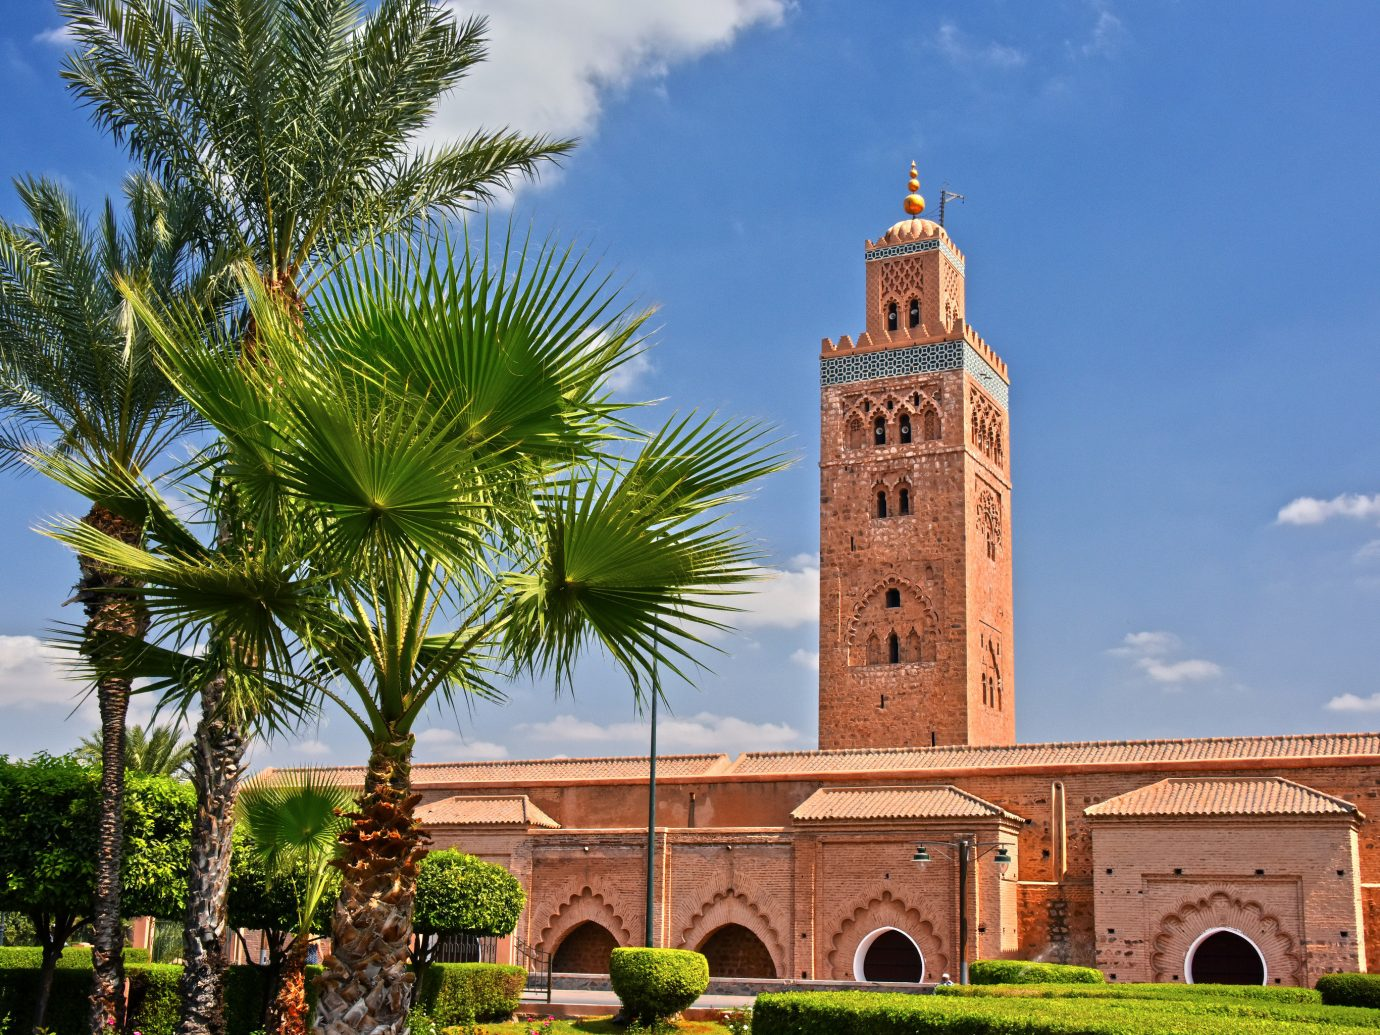 Trip Ideas sky outdoor building tower tree landmark vacation tourism arecales place of worship Church tall palm stone